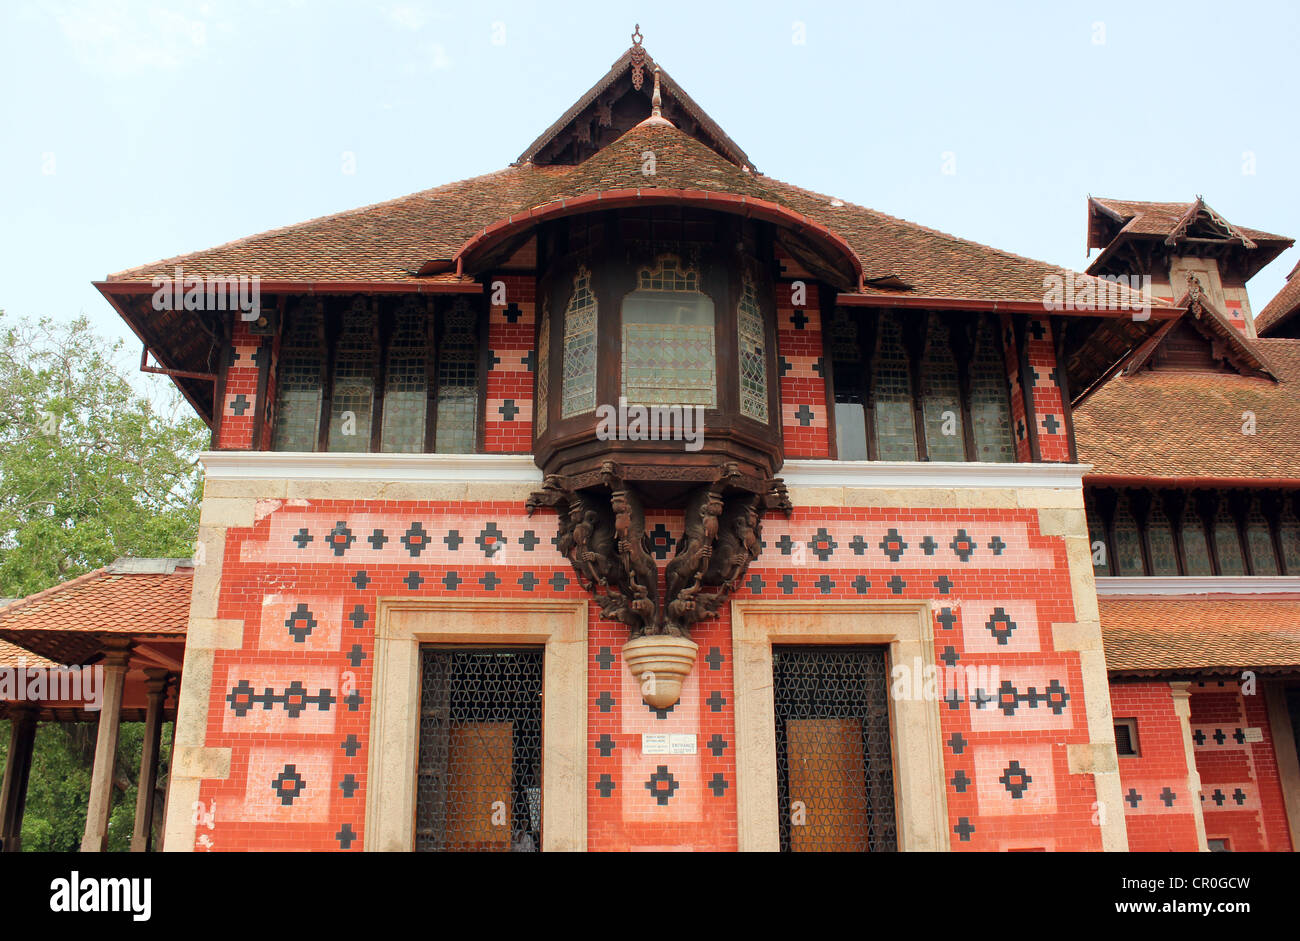 Napier Museum of Art and Natural history Trivandrum Kerala India Stock Photo